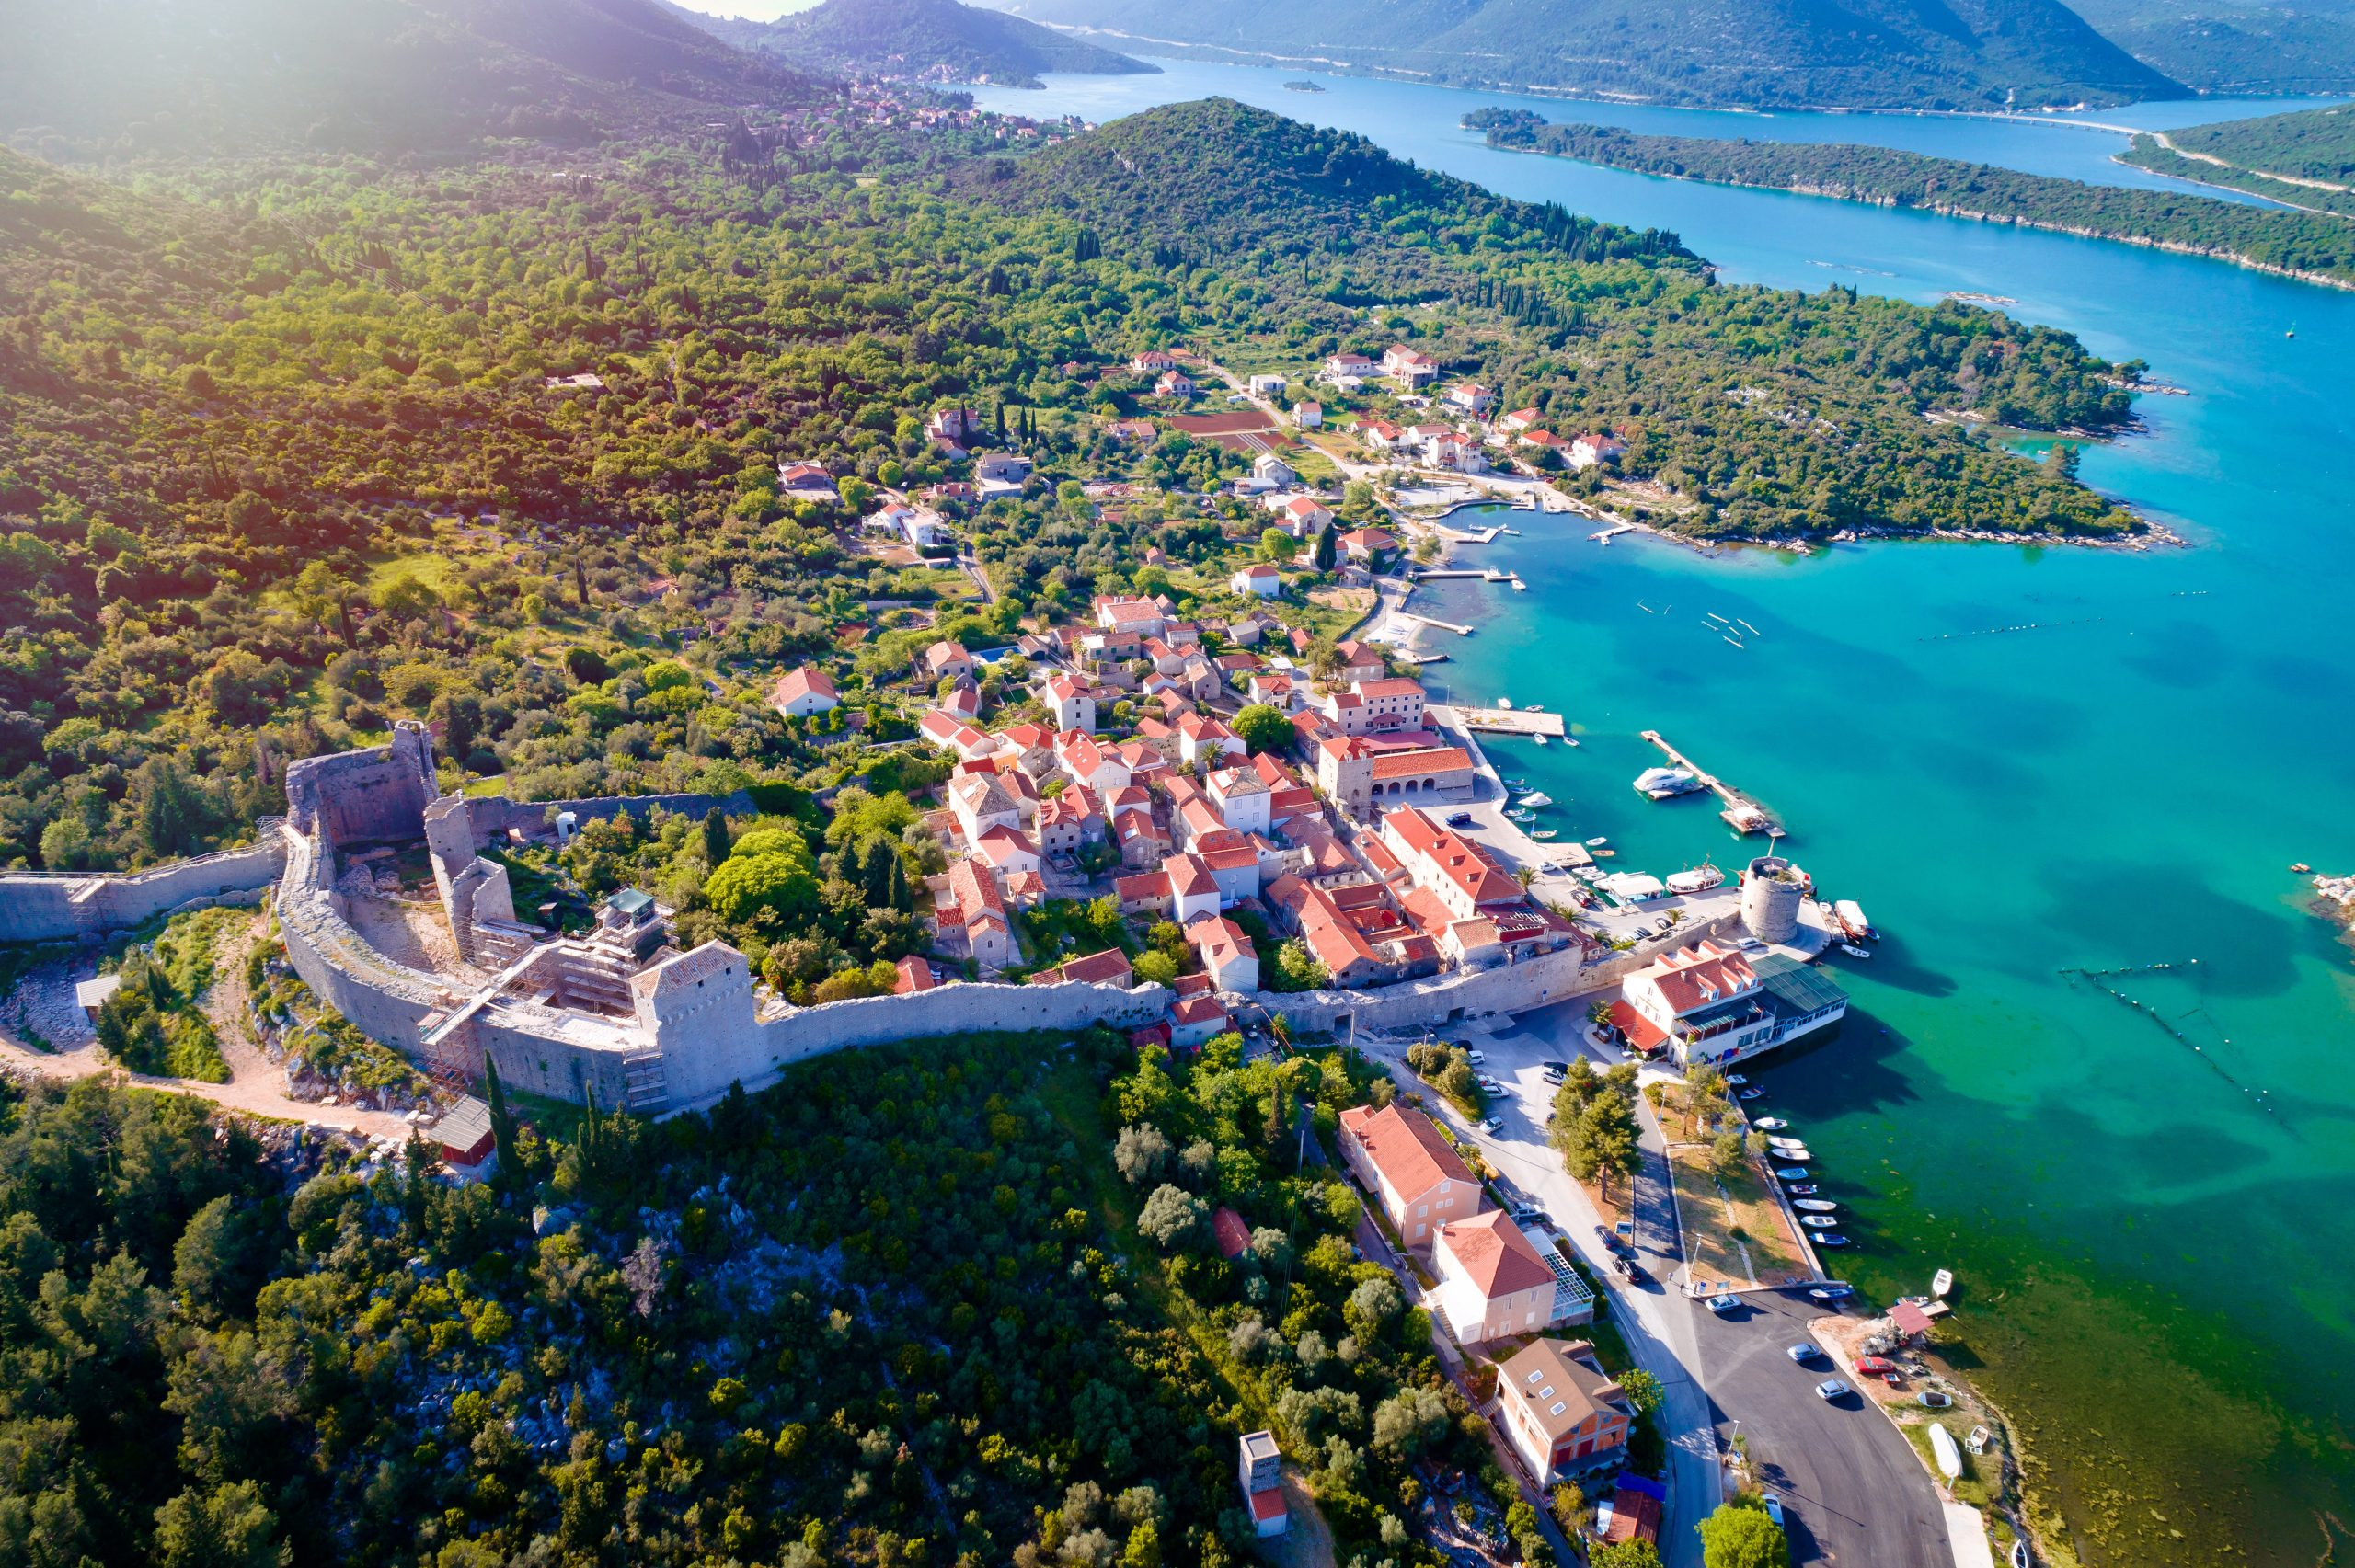 Visit Mali Ston On Your Wine And Oyster Tasting Experience At The Pelješac Peninsula